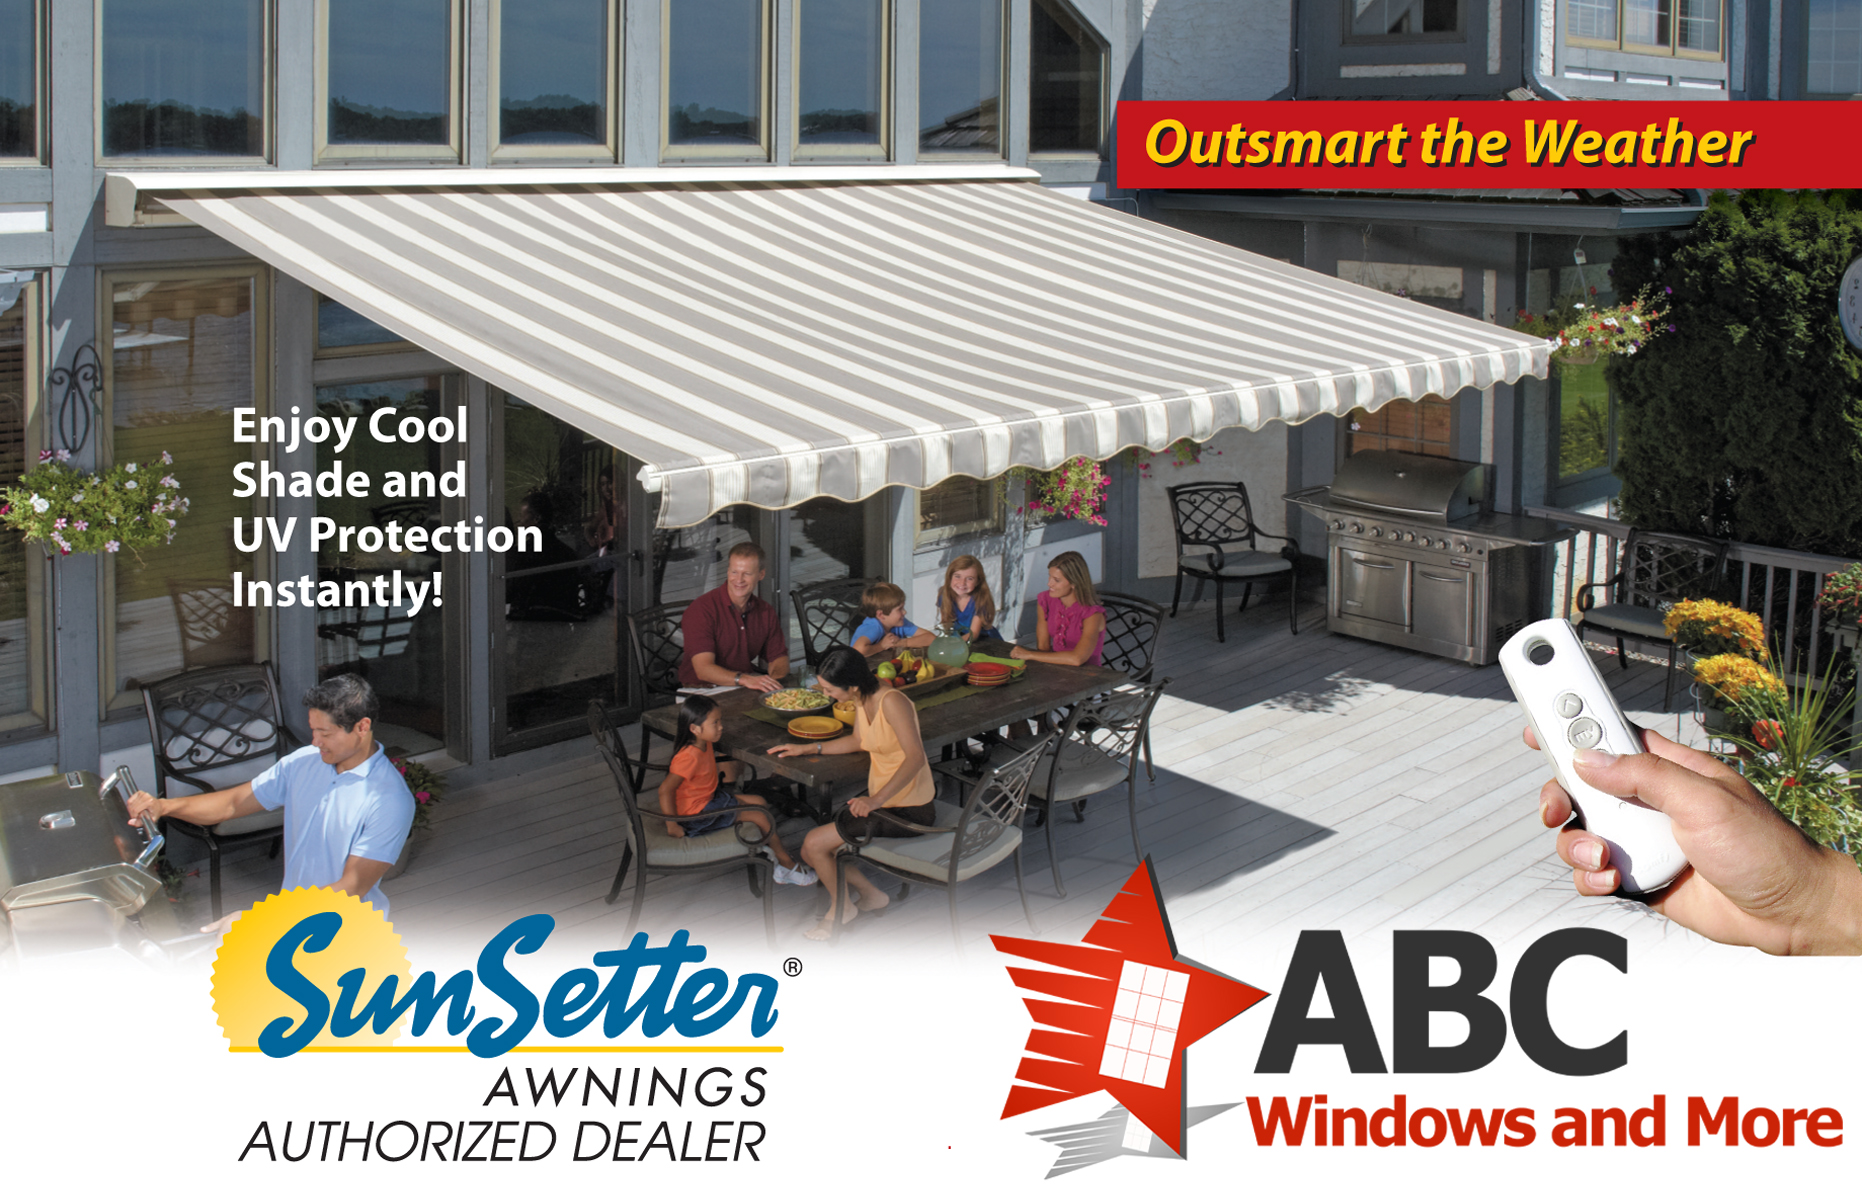 Motorized Retractable Awnings - ABC Windows And More